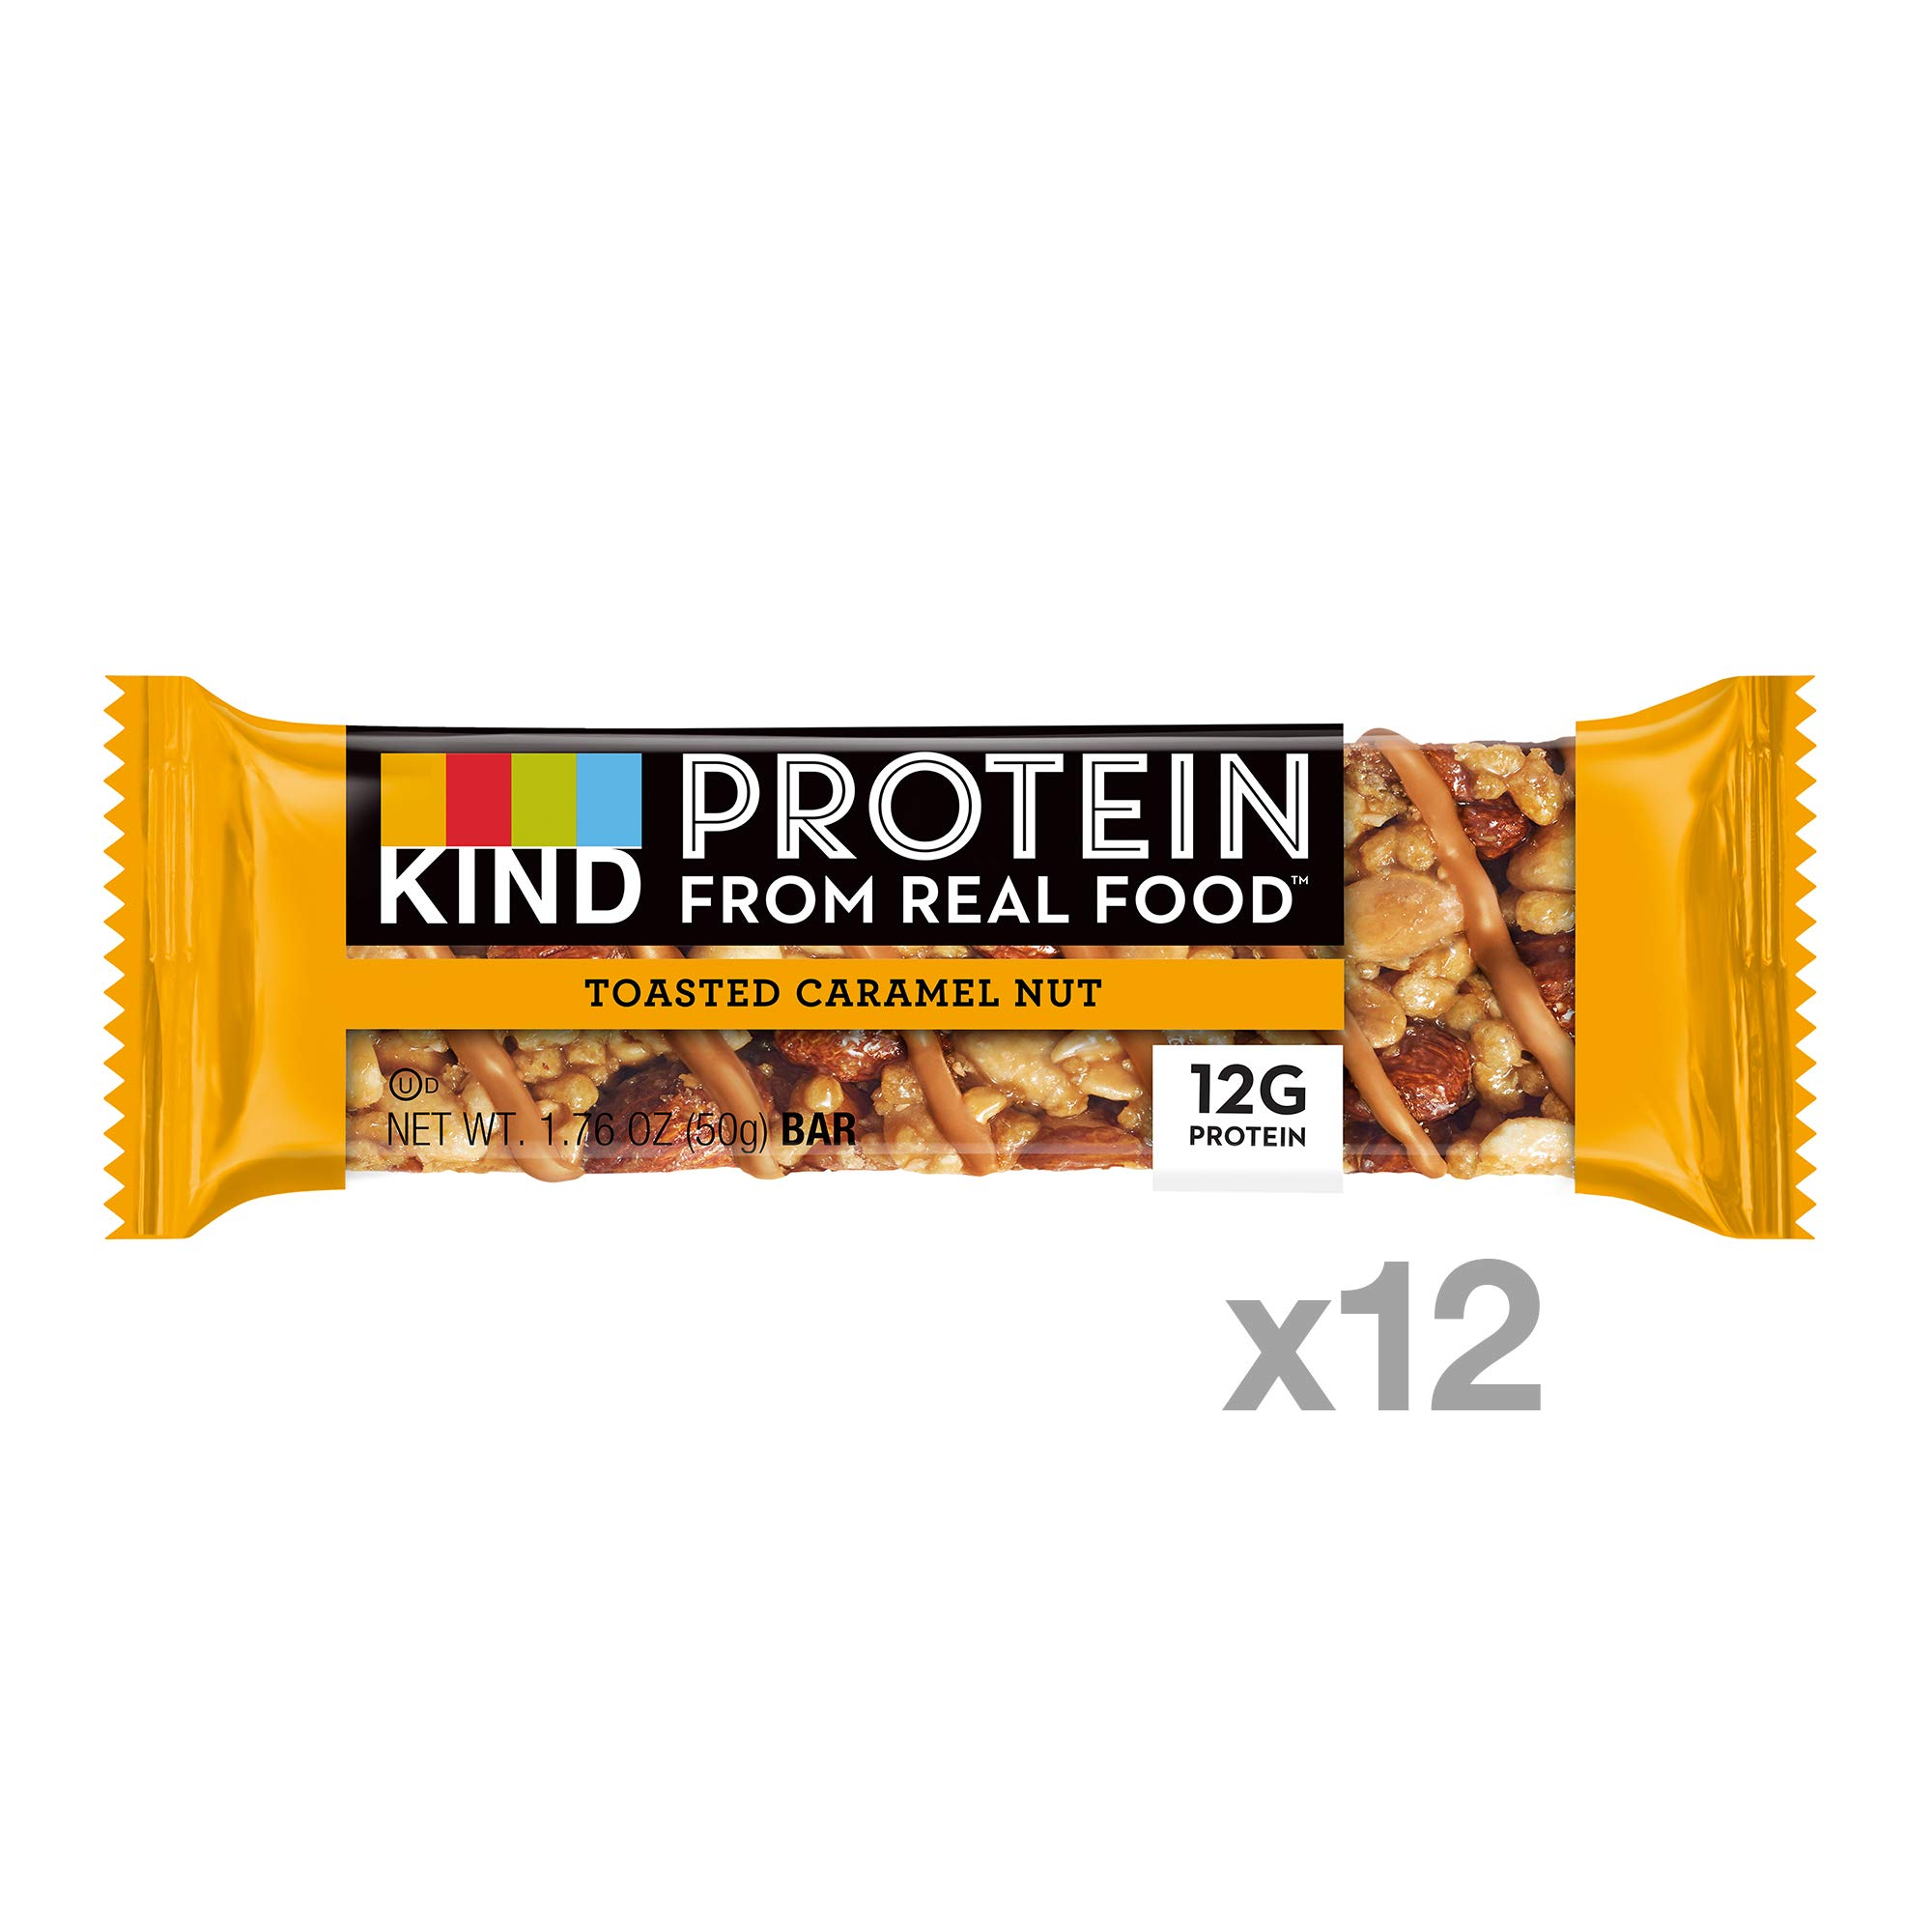 KIND Protein Bars, Toasted Caramel Nut, Gluten Free, 12g Protein,1.76oz, 12 count by KIND (Image #2)